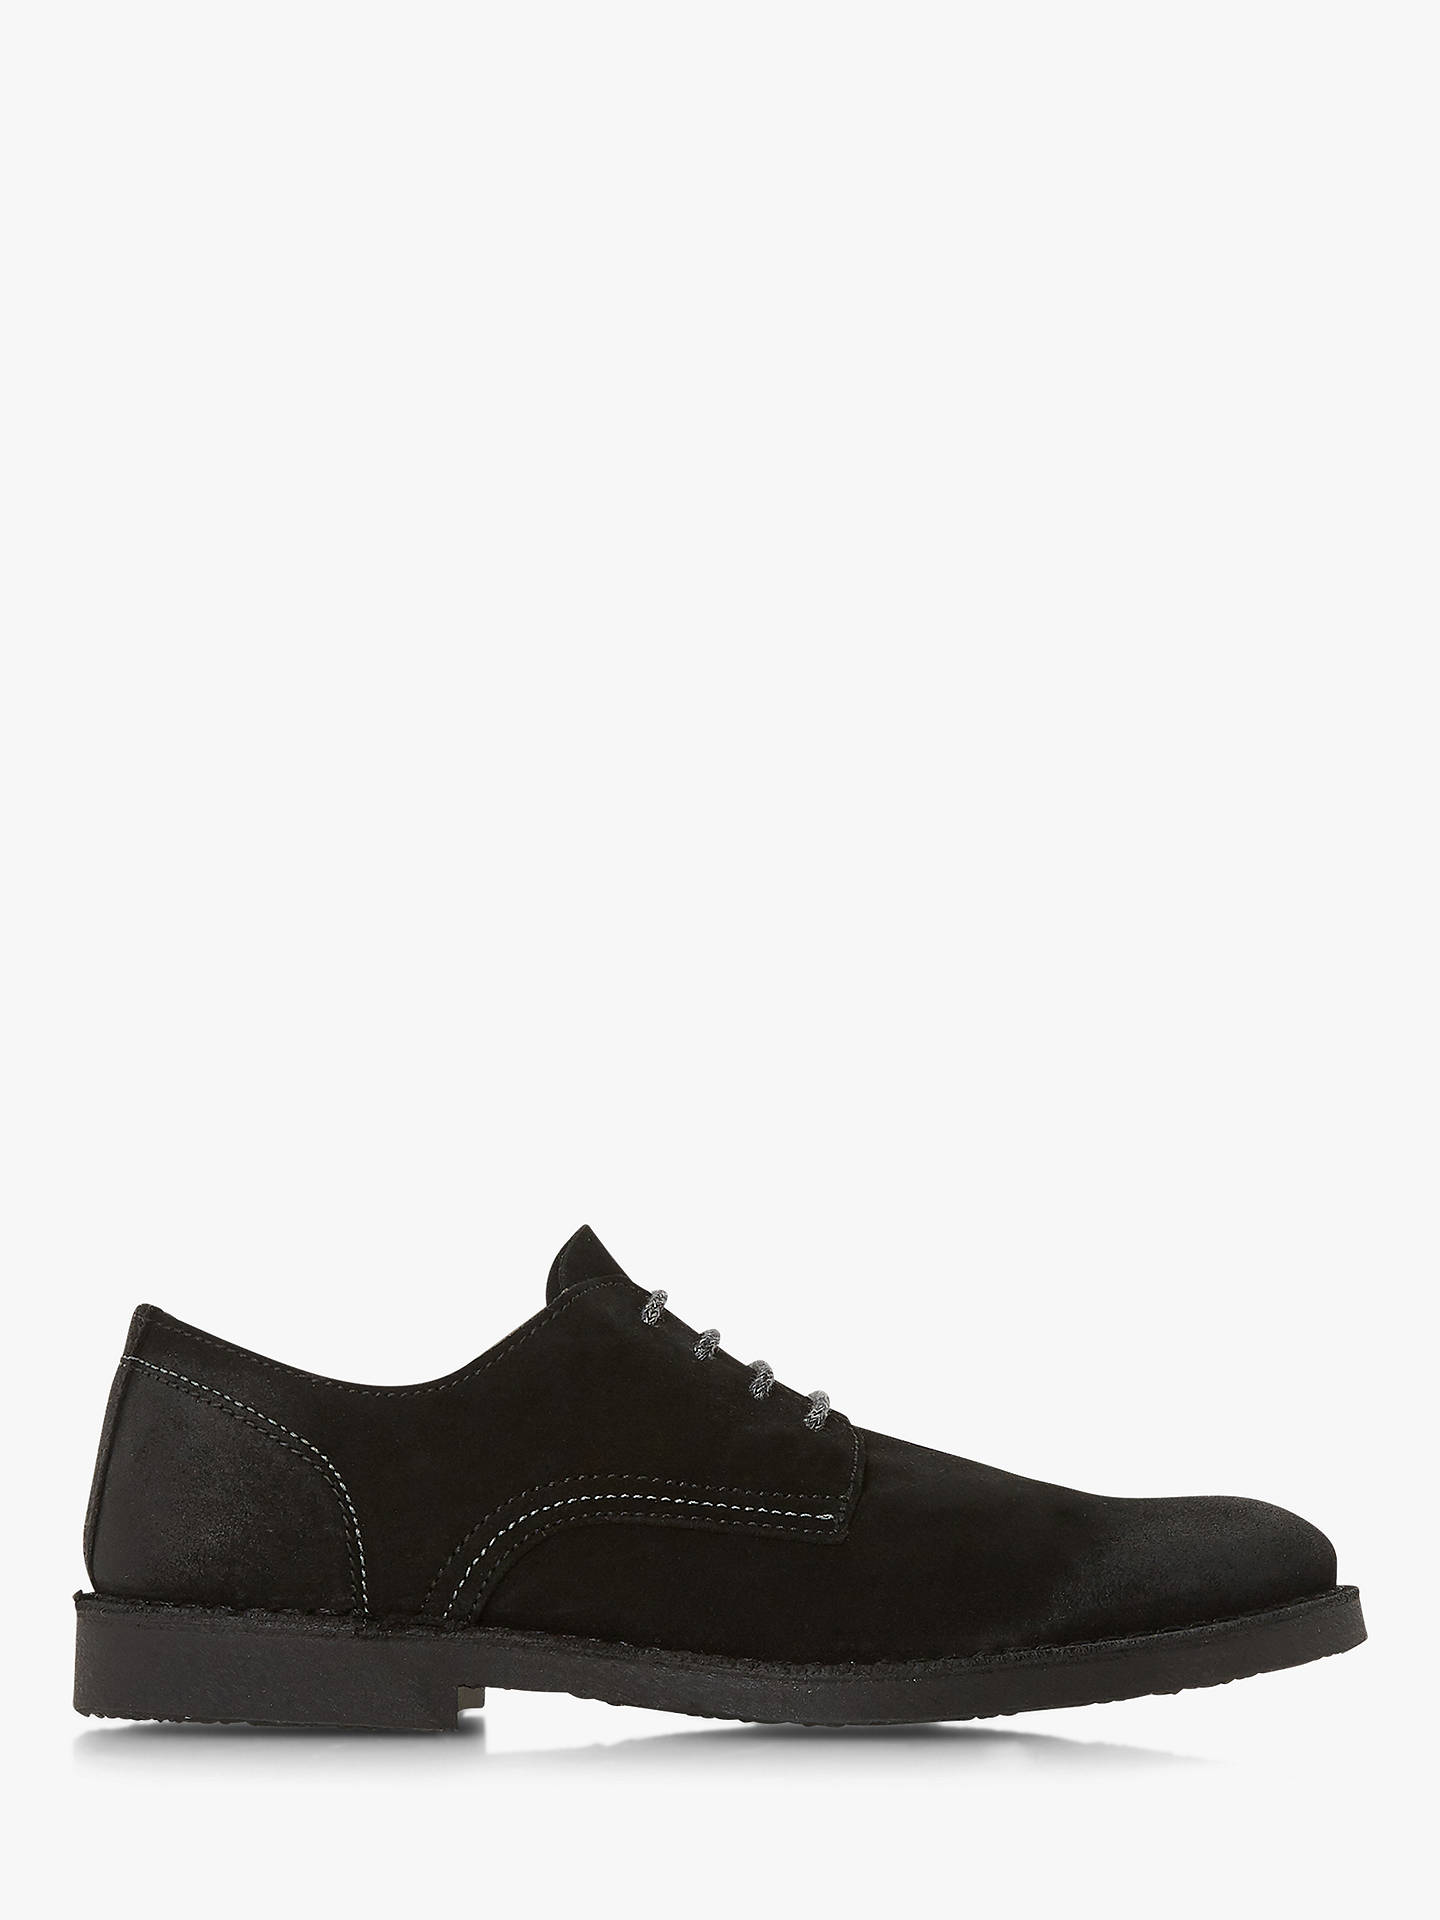 Buy Bertie Bowenn Suede Desert Shoes, Black, 6 Online at johnlewis.com